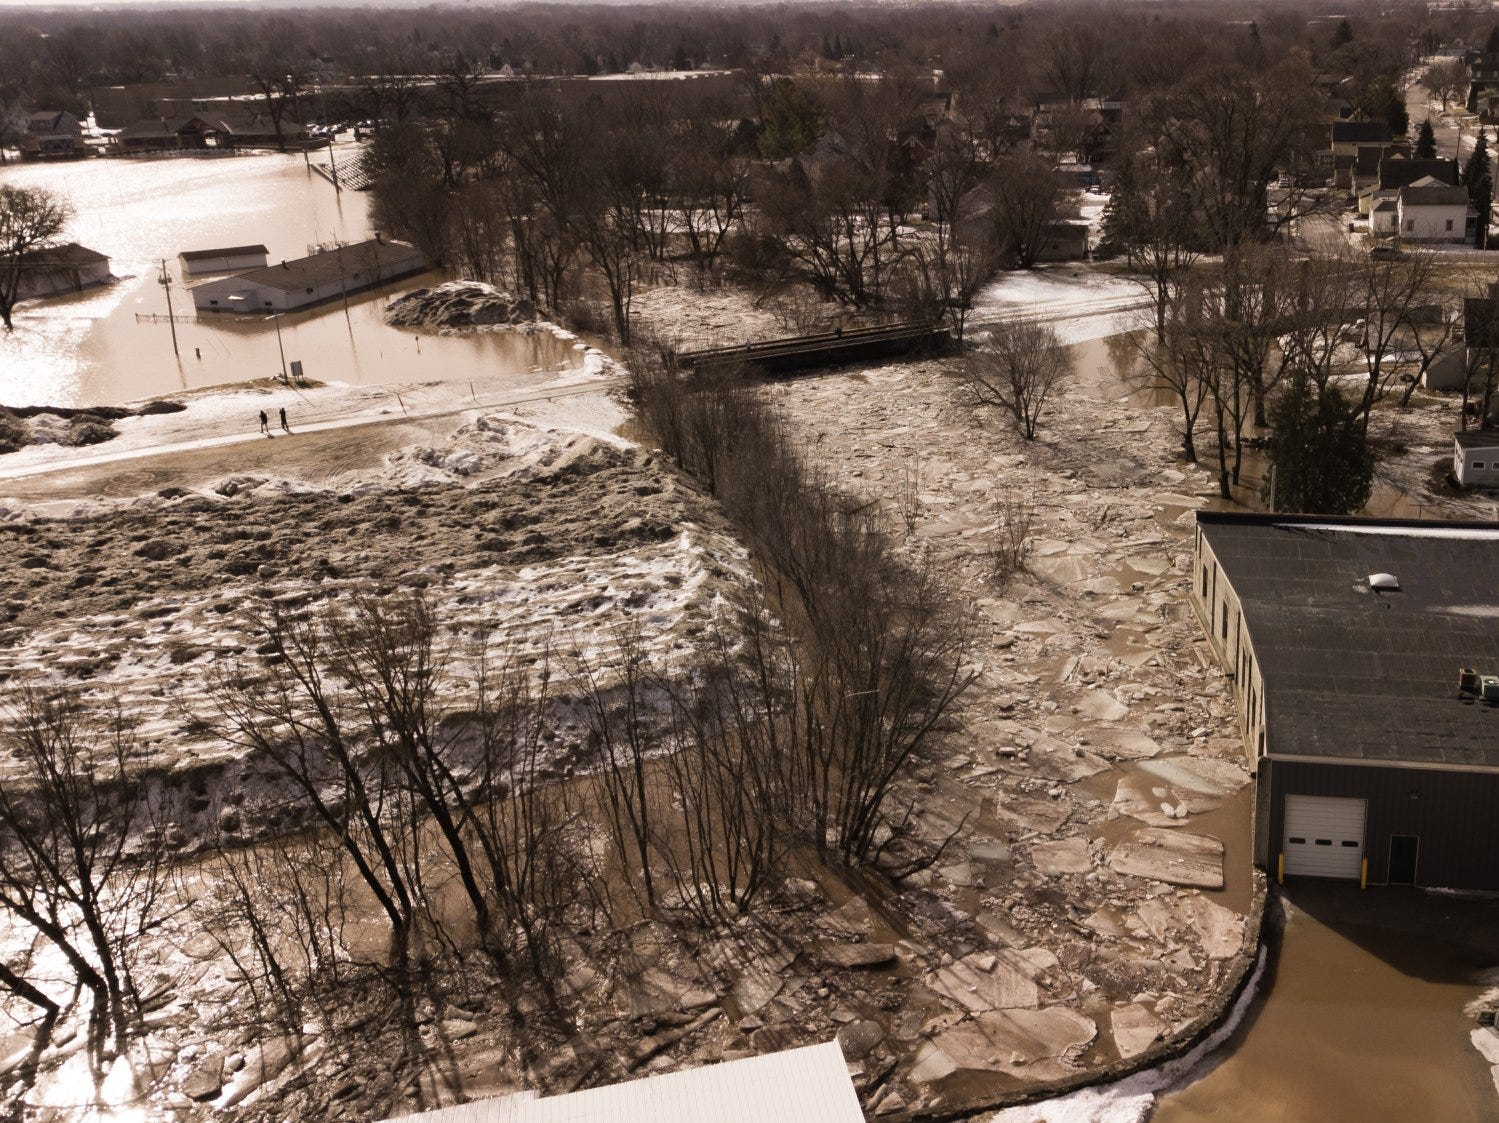 The view above the area affected by flooding at about 11 a.m. on Thursday, March 14 as taken by drone. This photo was taken south of Fruth Field.